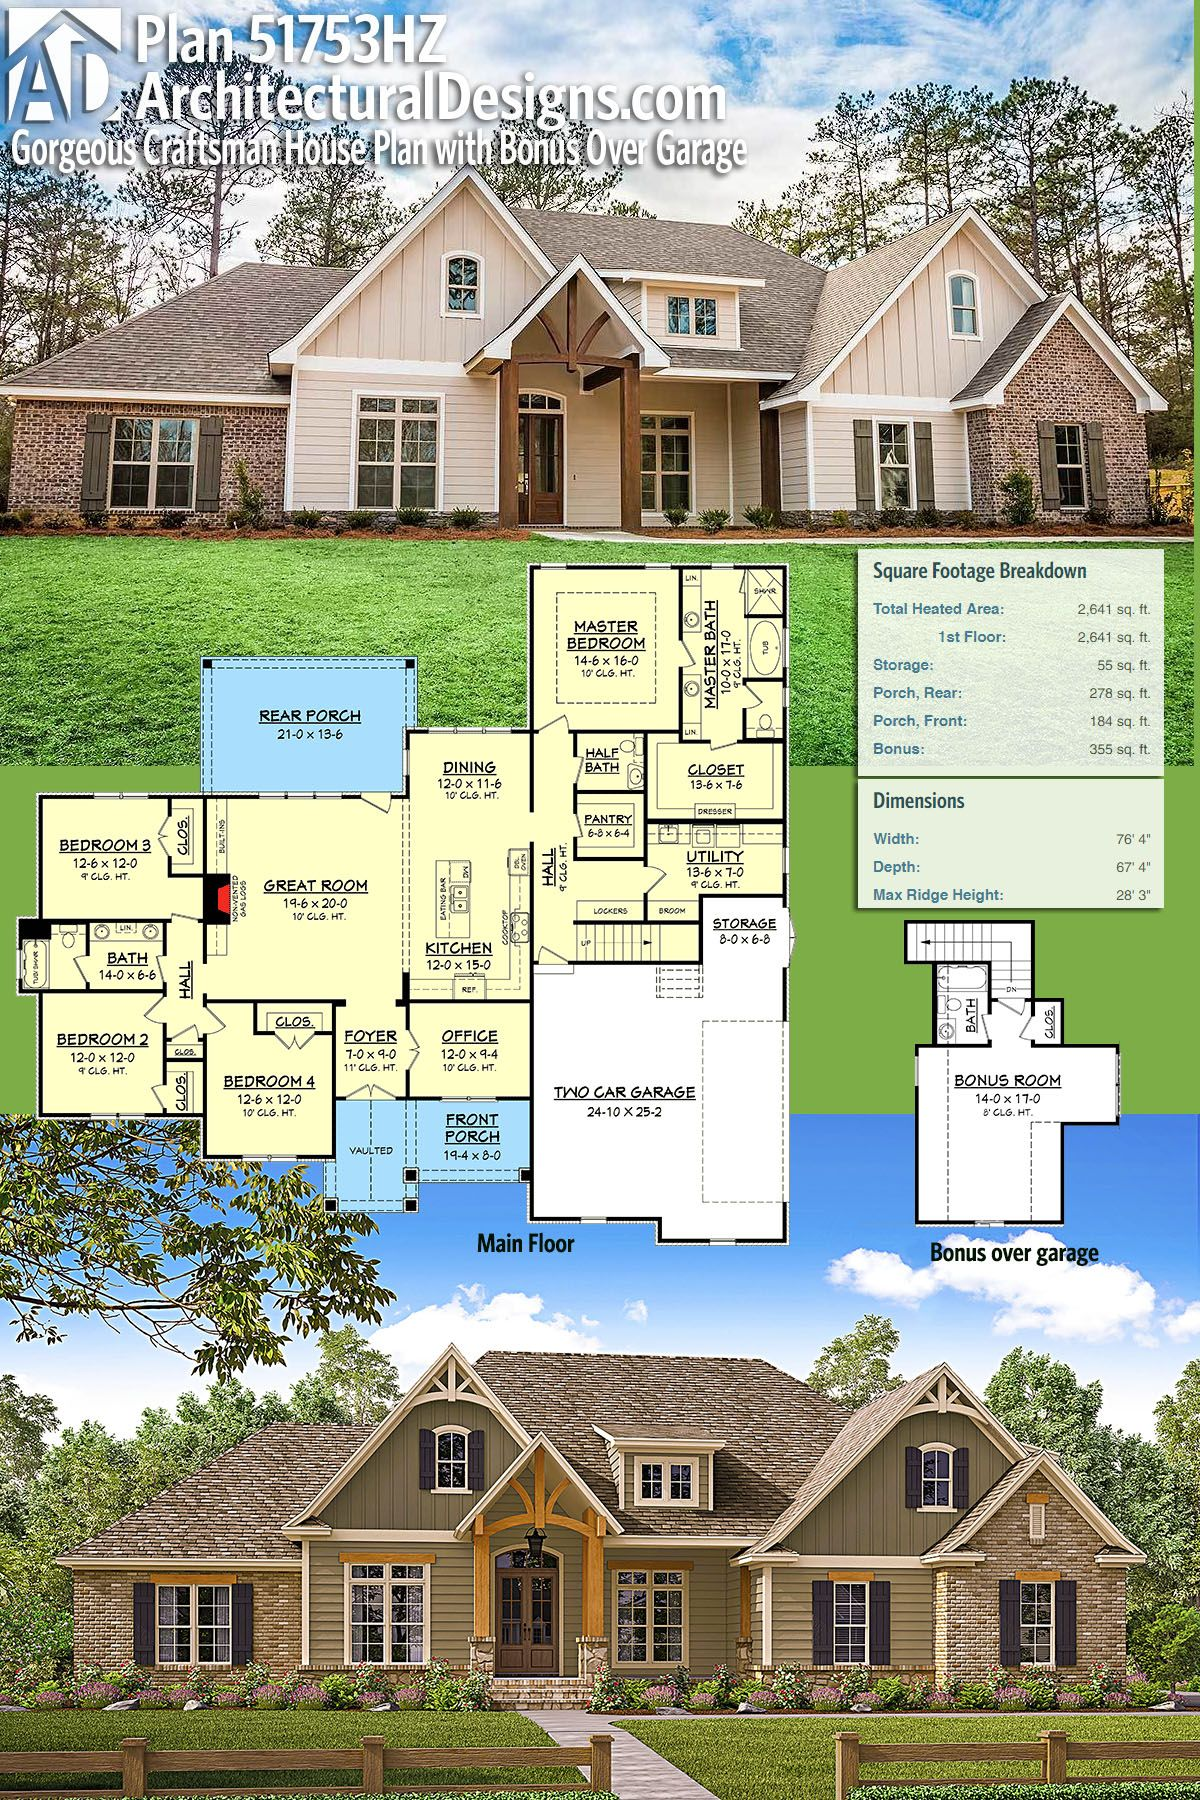 Architectural Designs House Plan 51753HZ gives you